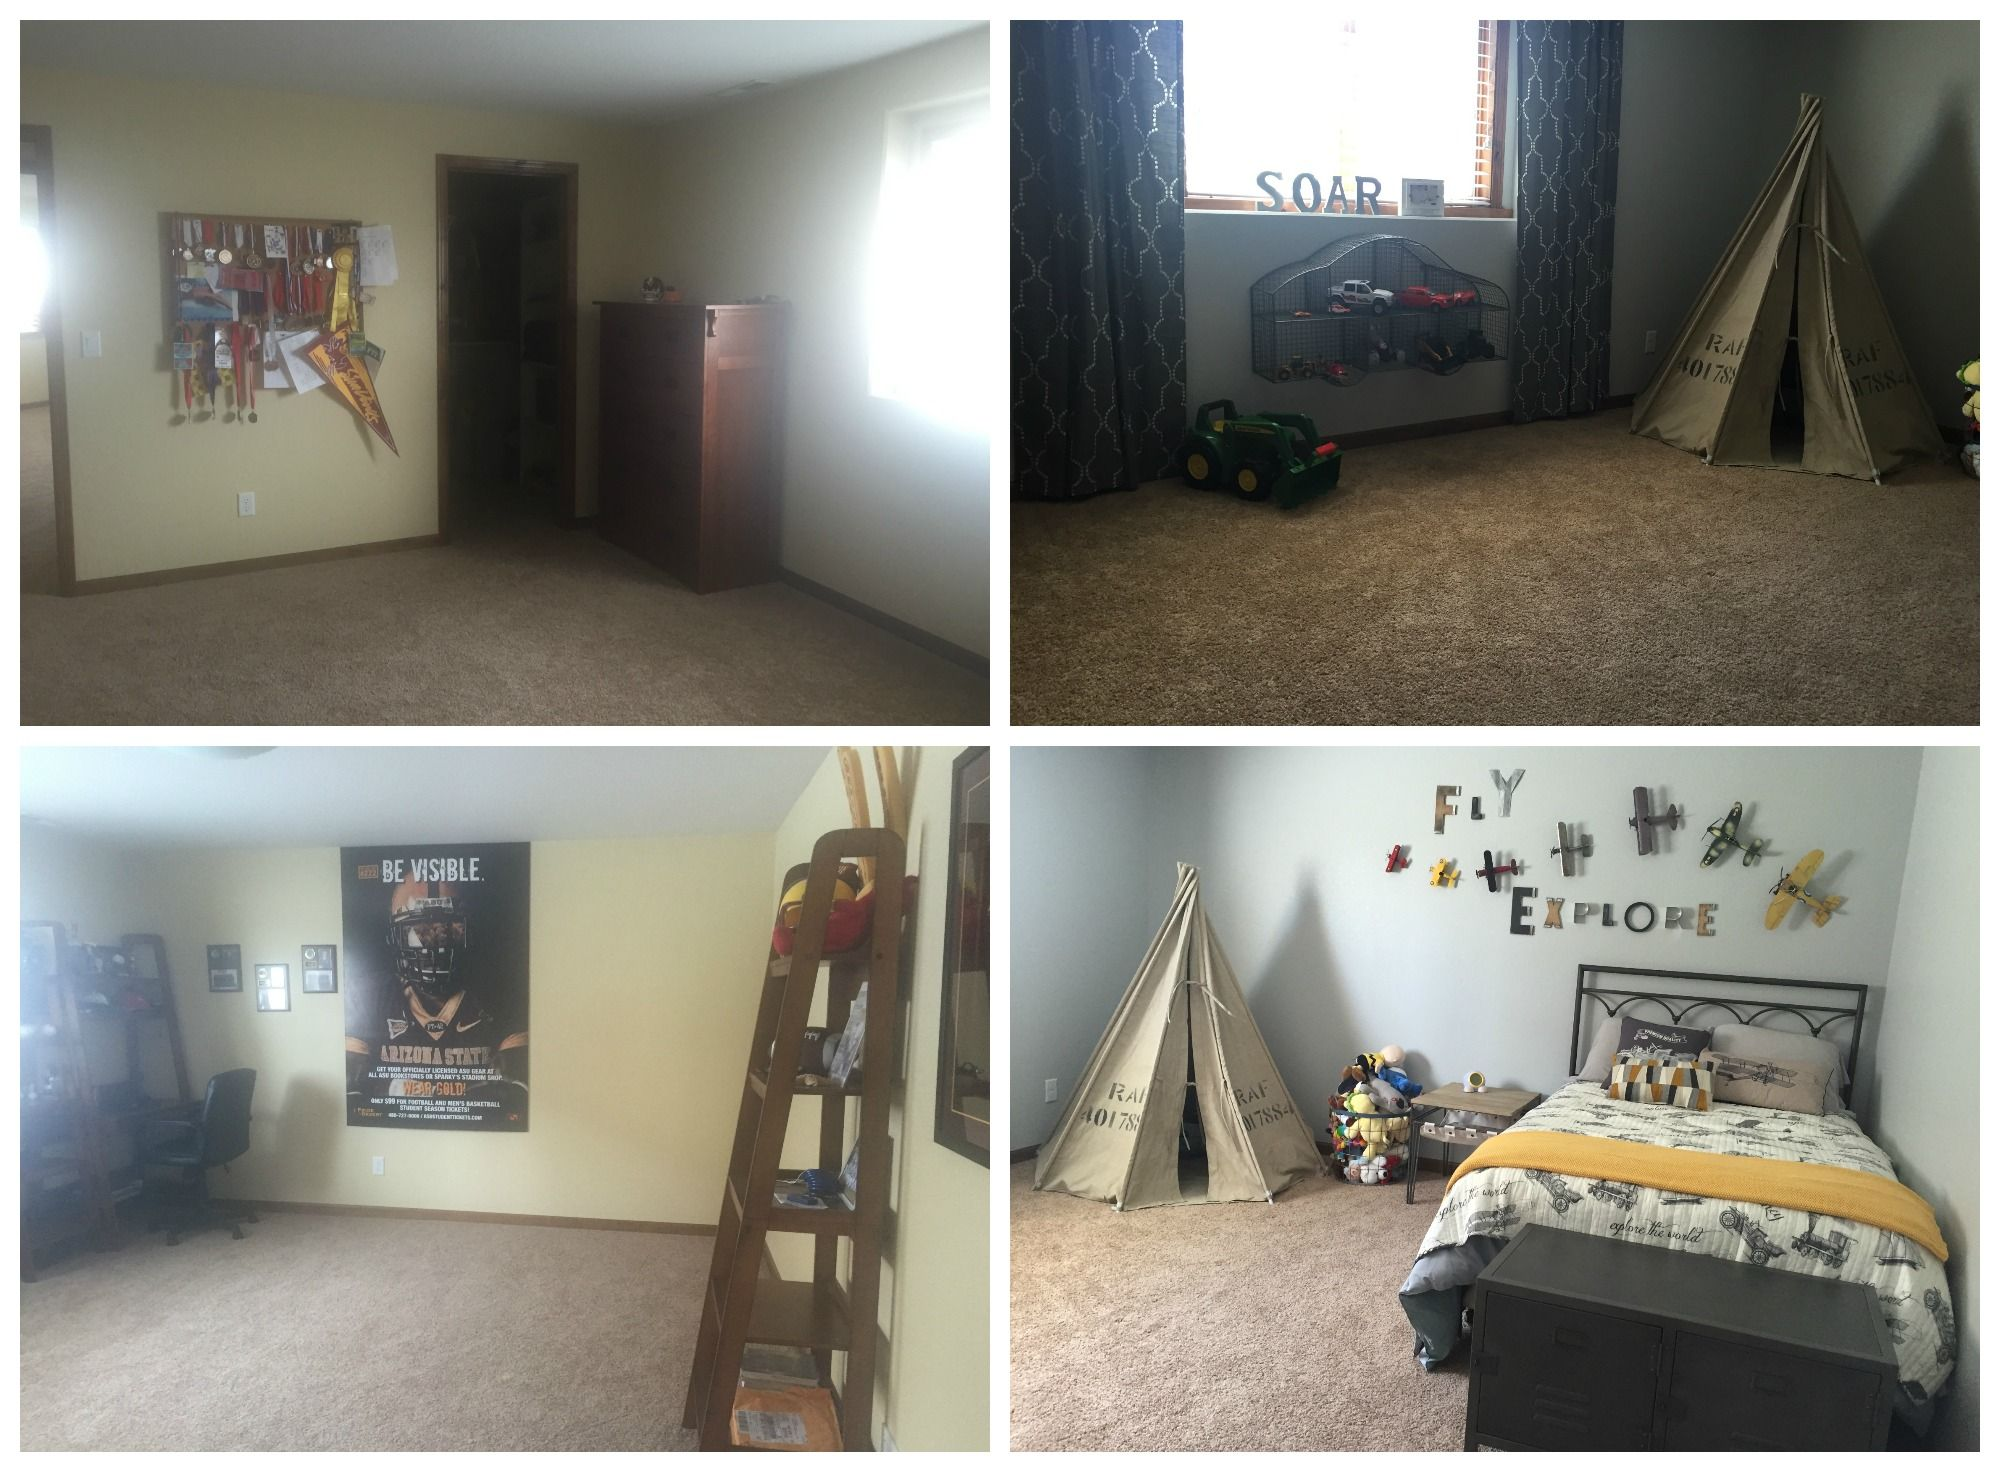 Boyu0027s Room Before And After (Soul Interiors, Bismarck, ND)